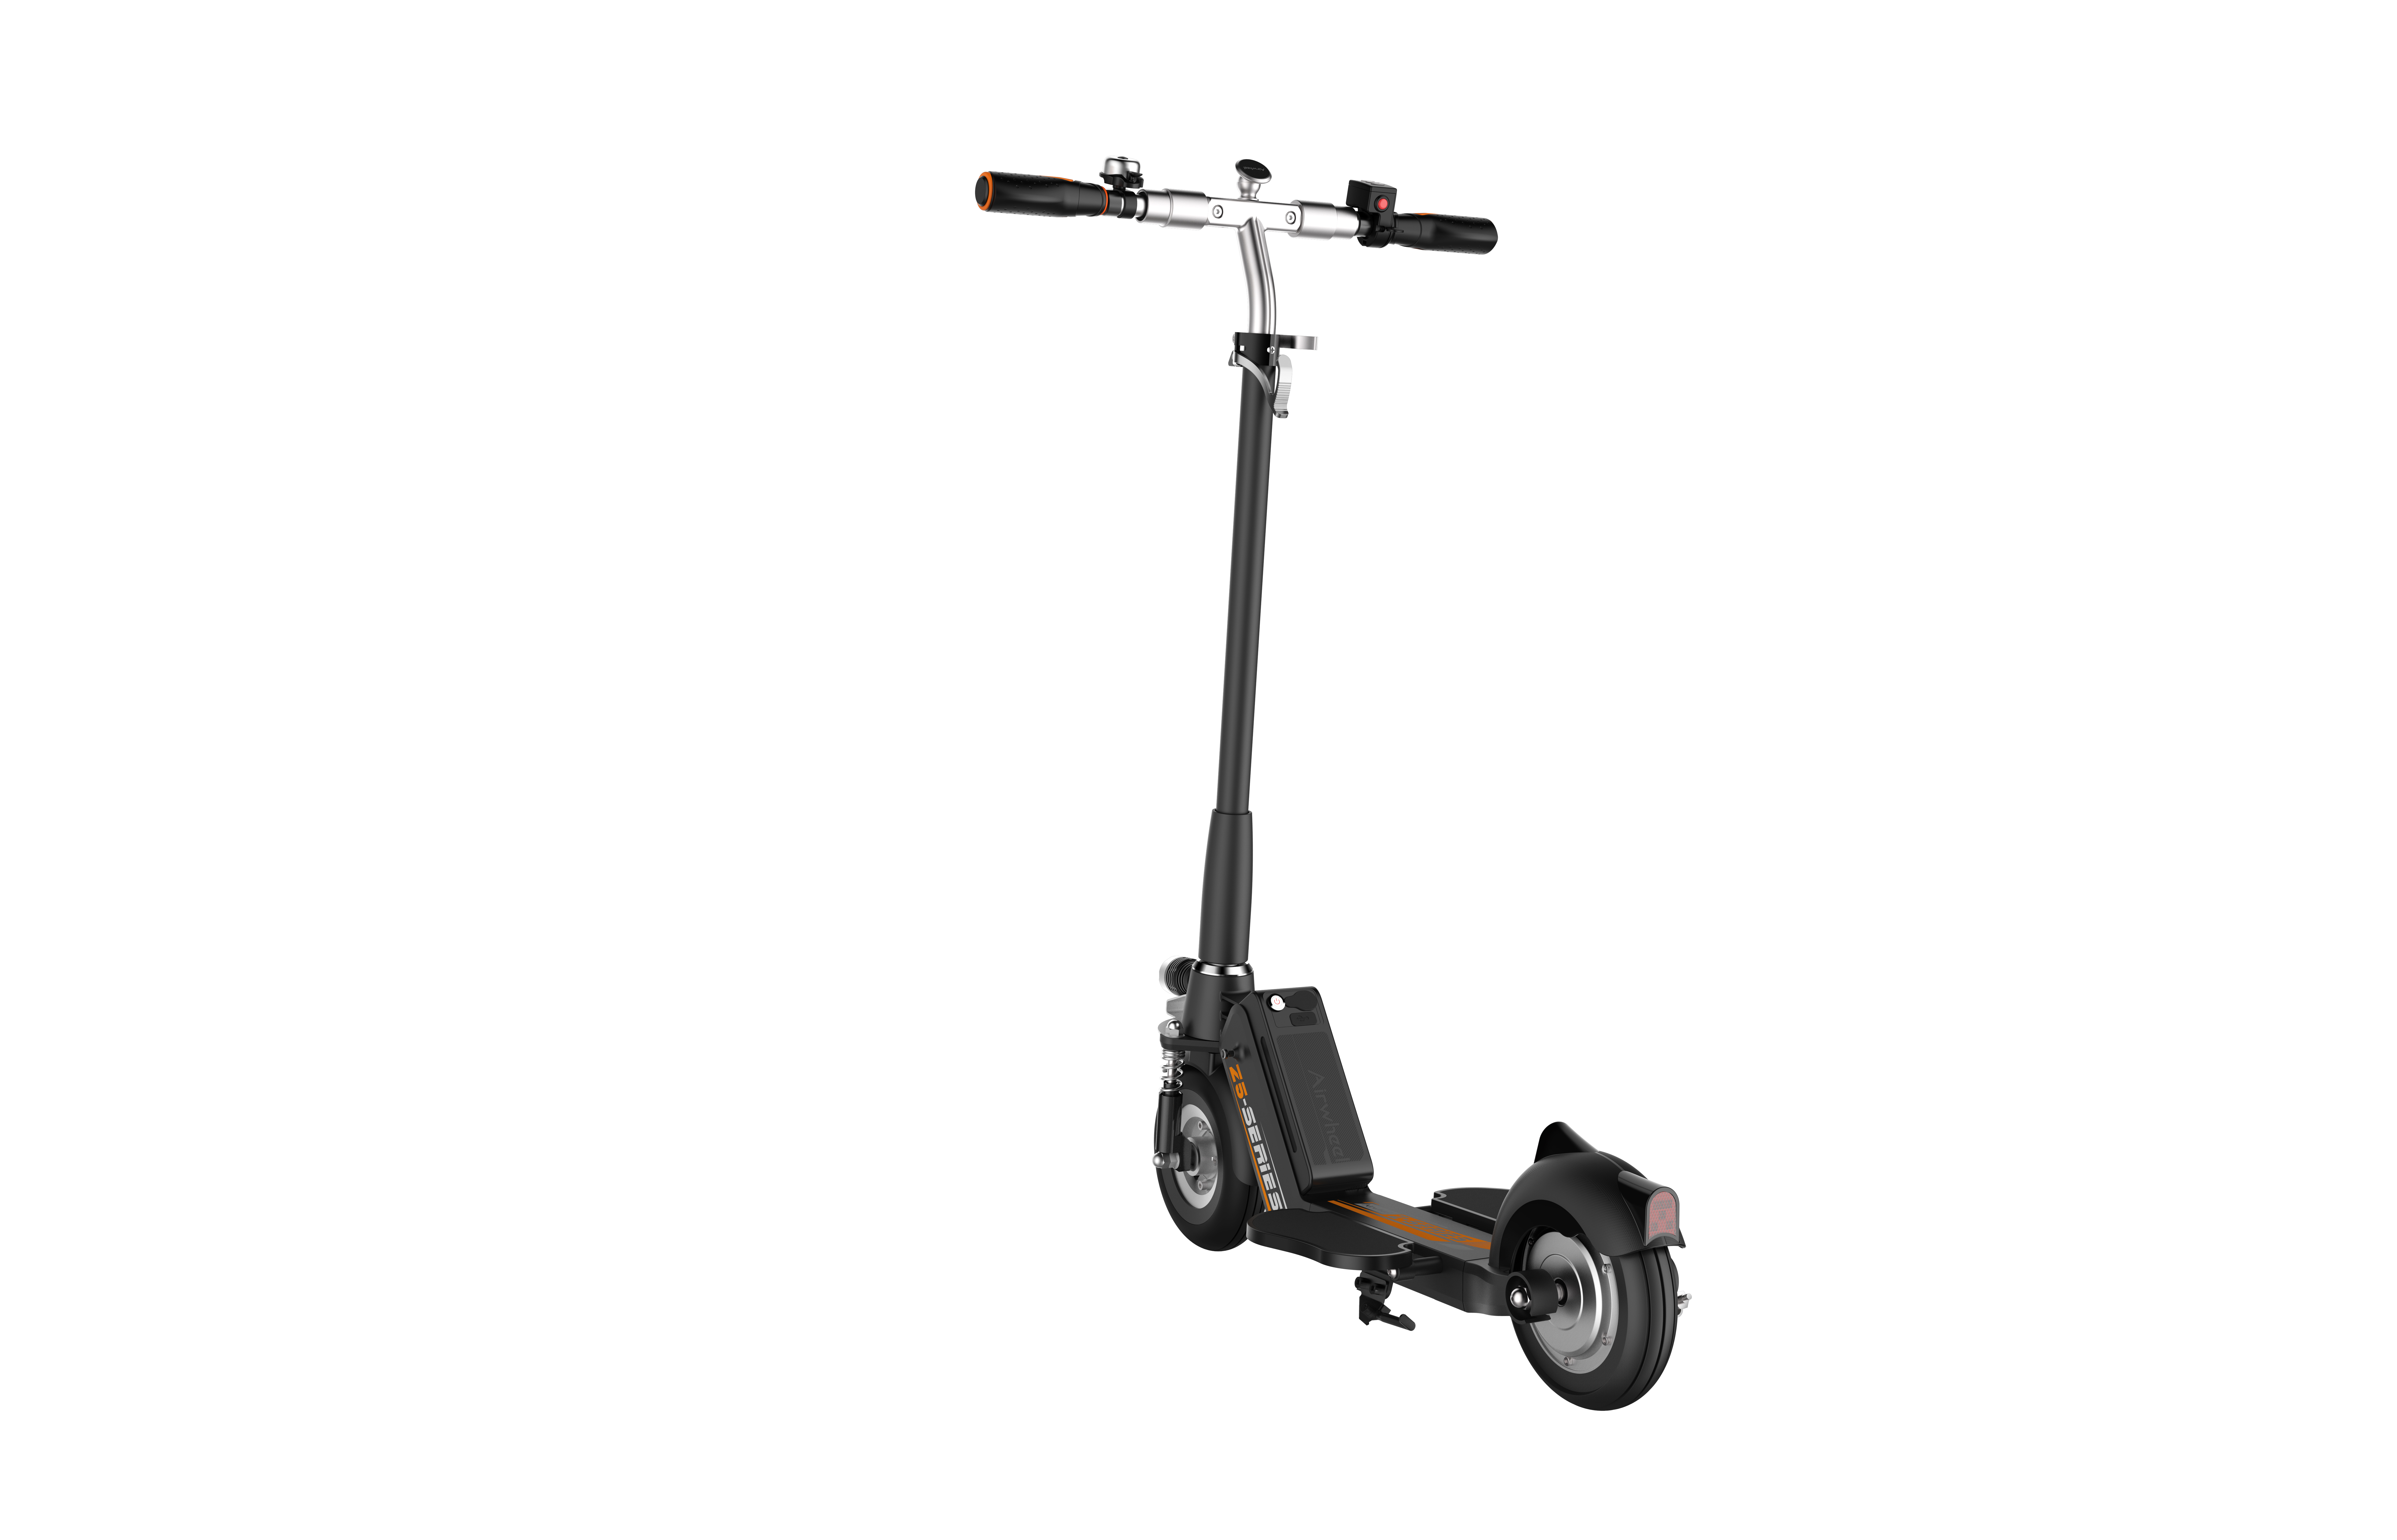 Aw2 Foldable E Scooter